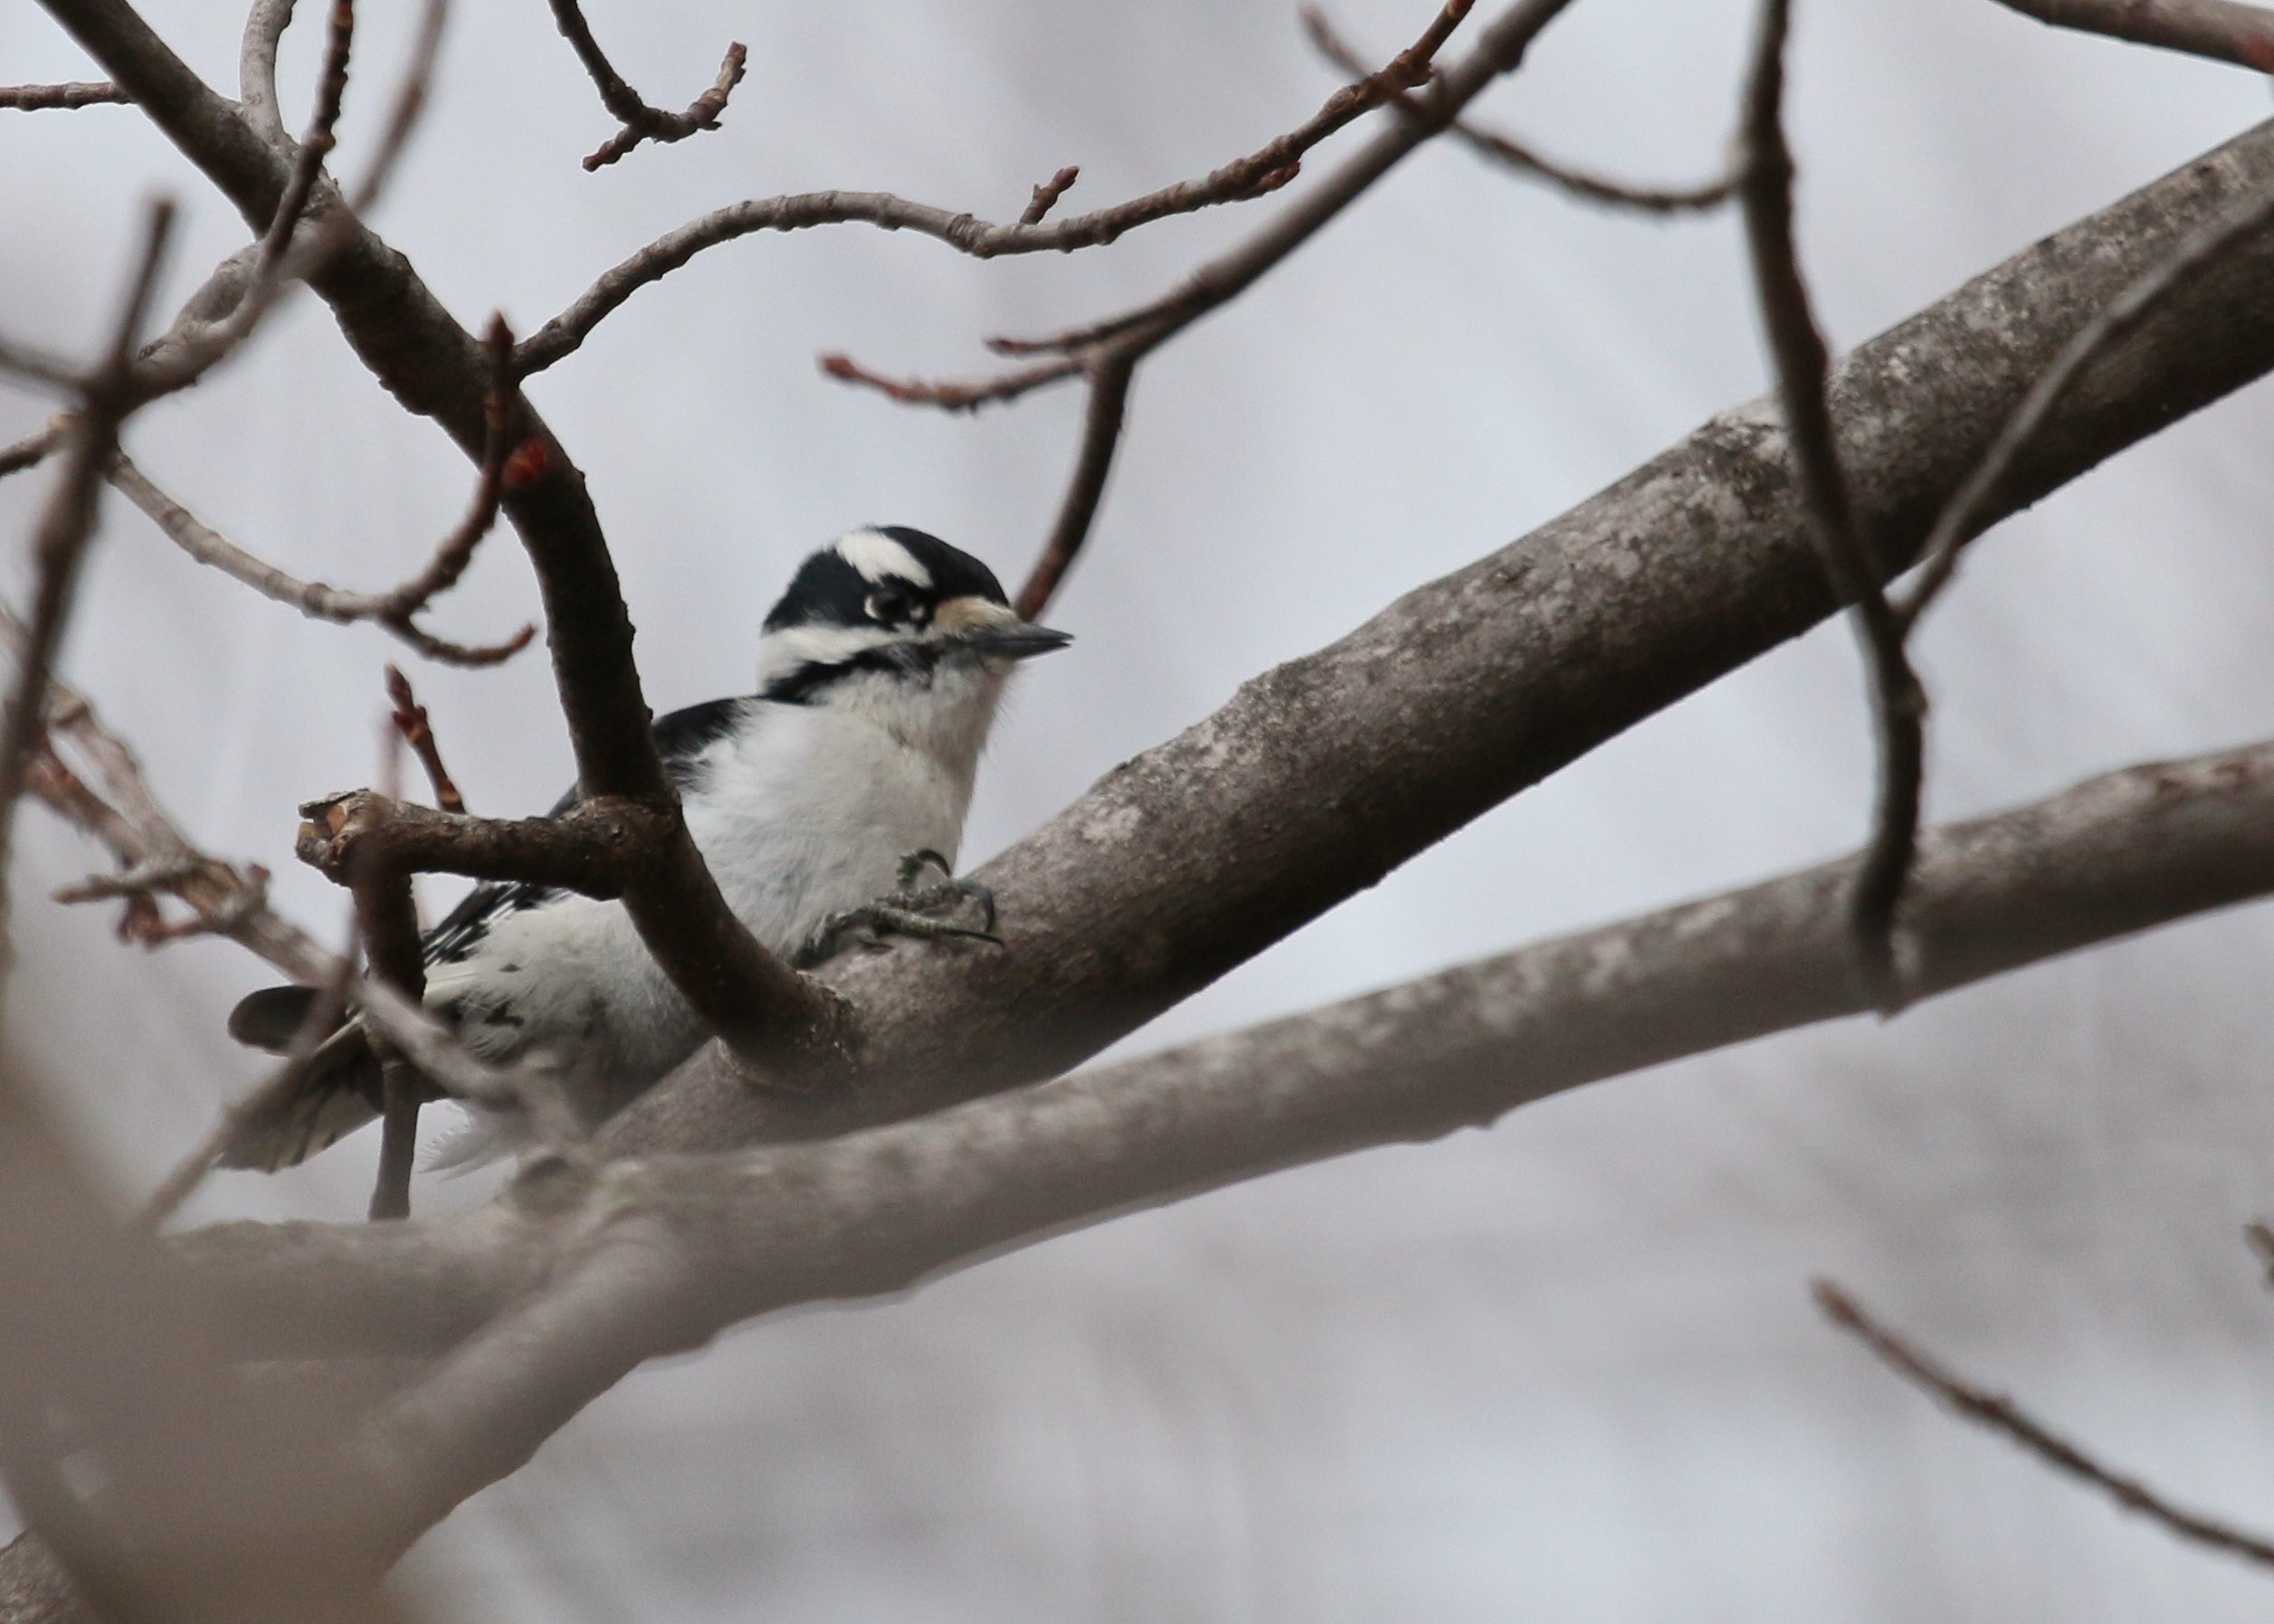 Downy Woodpecker at Wallkill River NWR, 4/5/14.